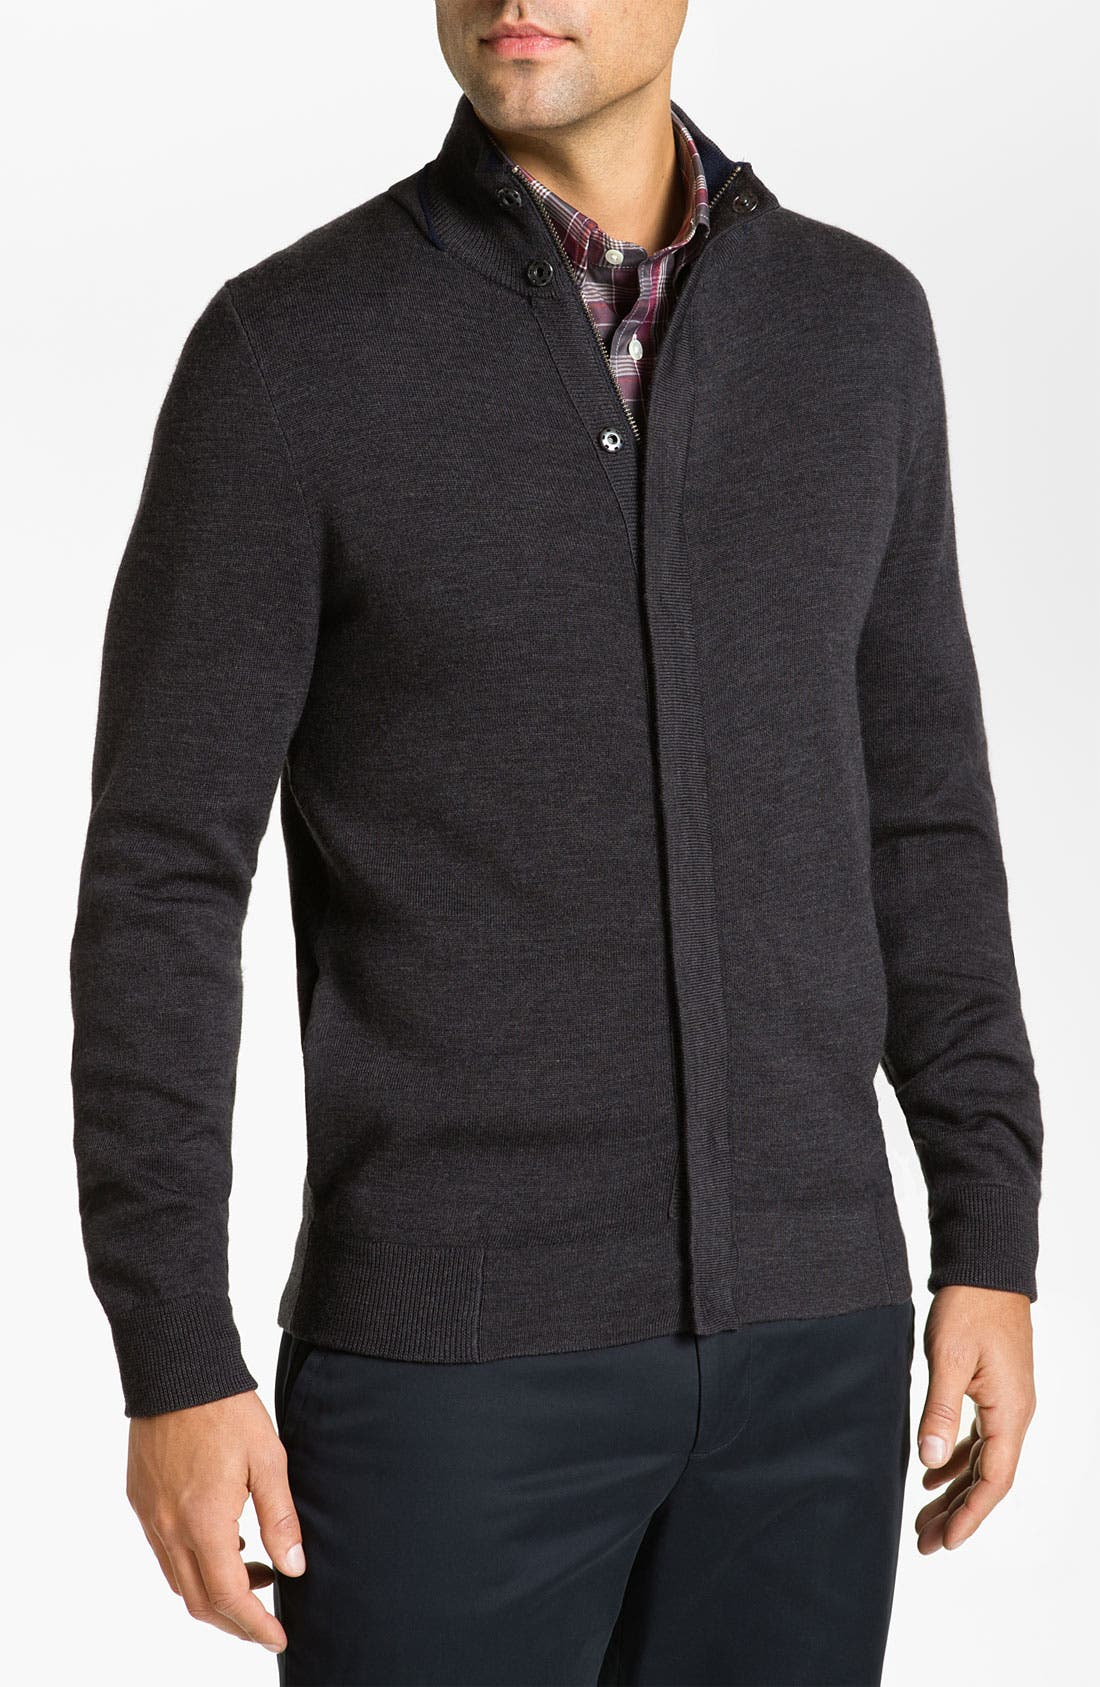 Main Image - Façonnable Classique Fit Merino Wool Cardigan